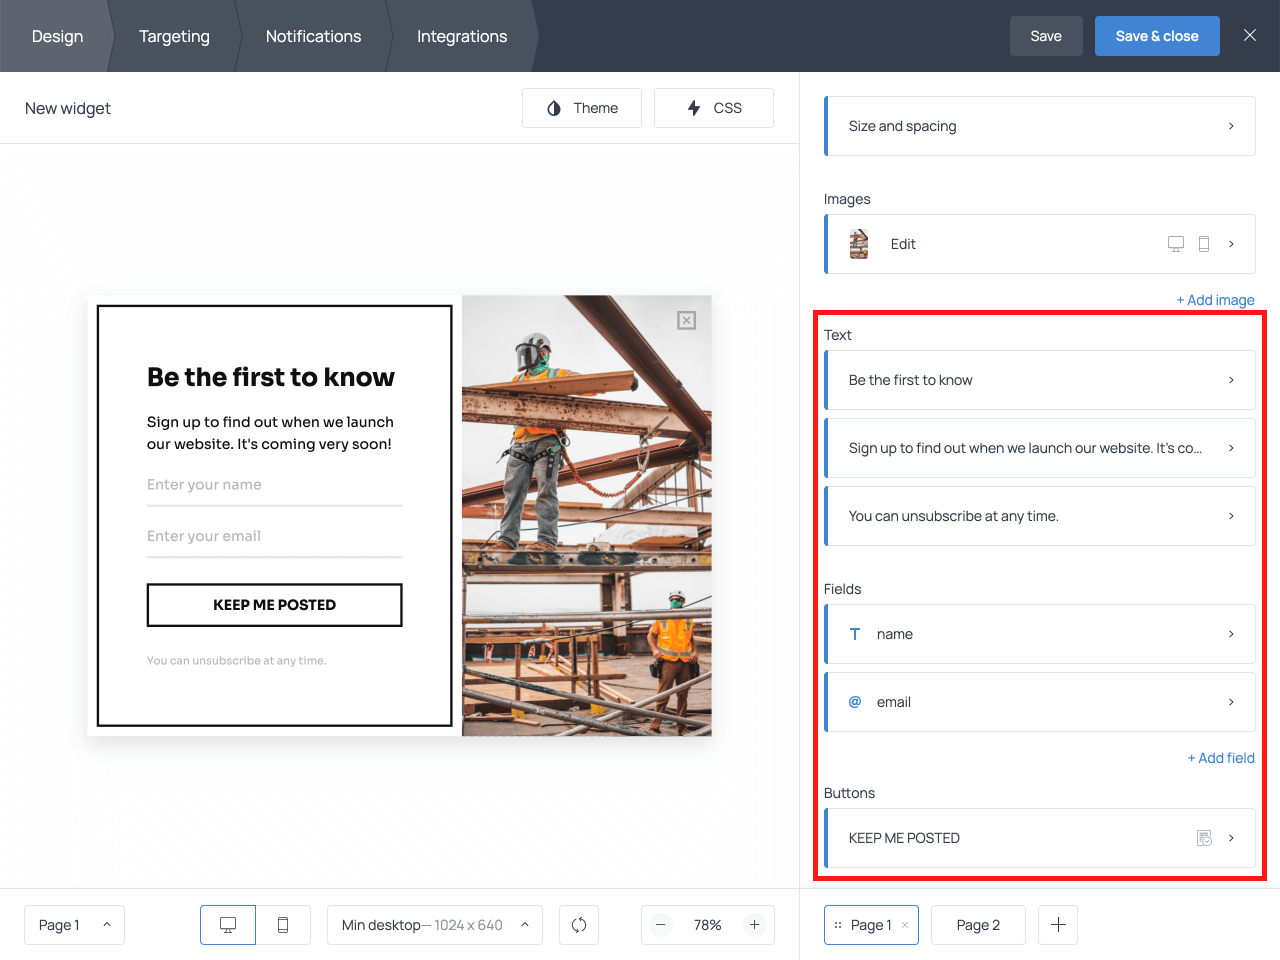 How to edit copy on an email signup form